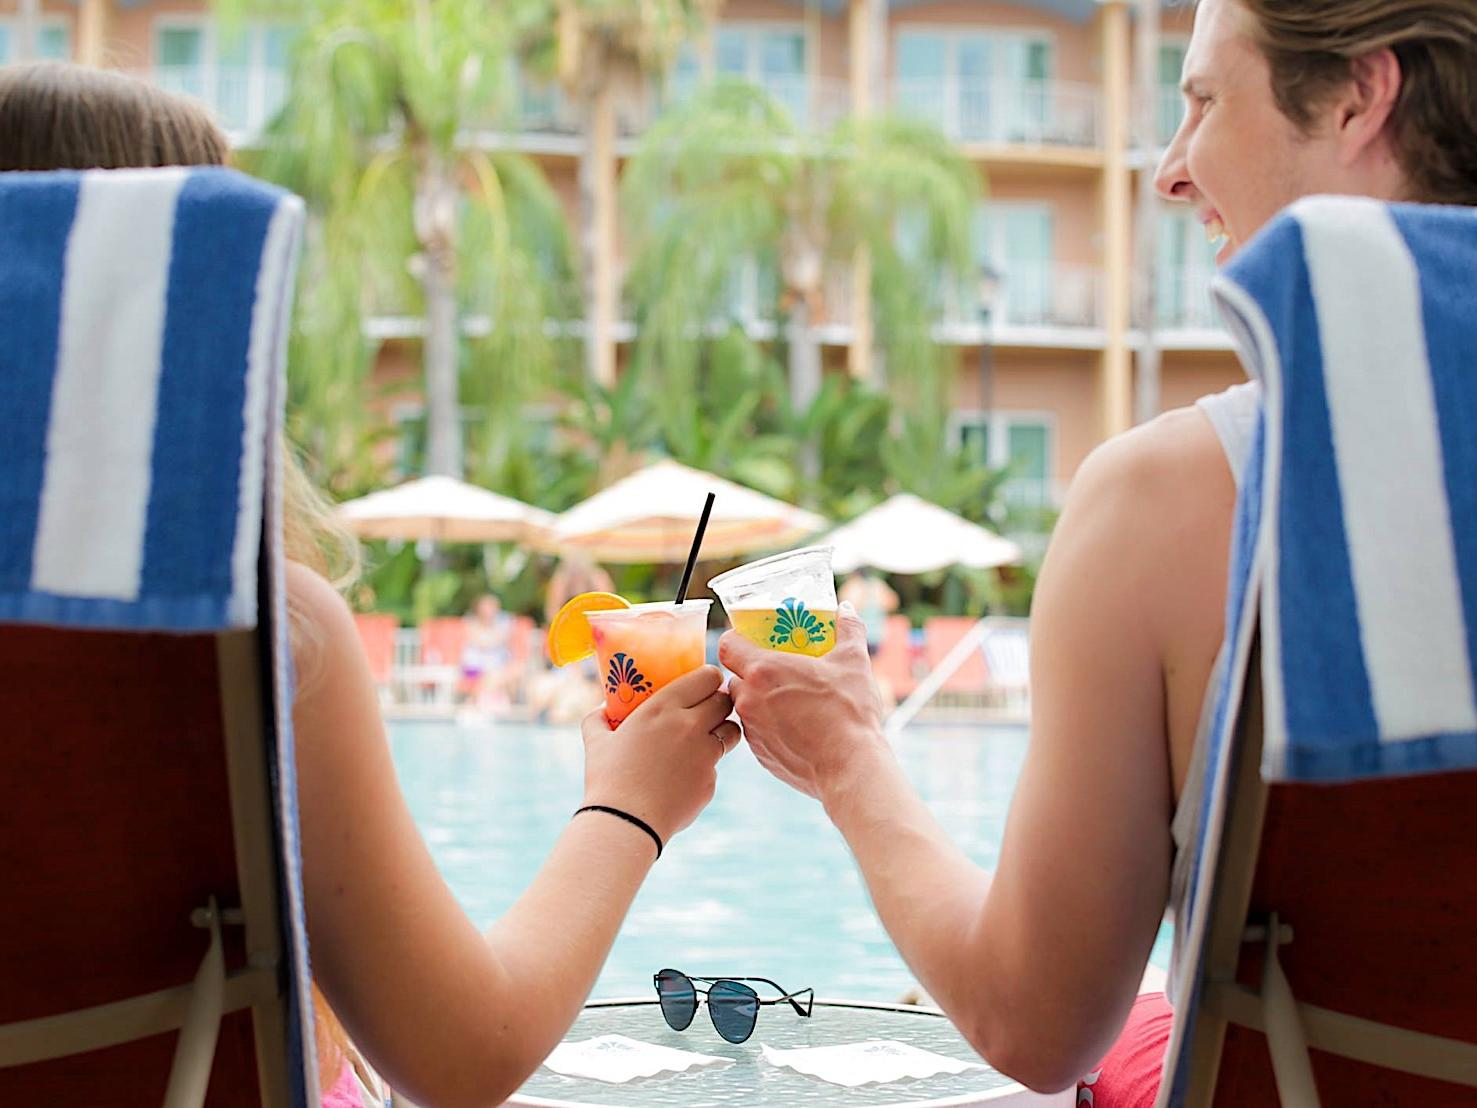 Two pool-goers clinking glasses by an outdoor pool.